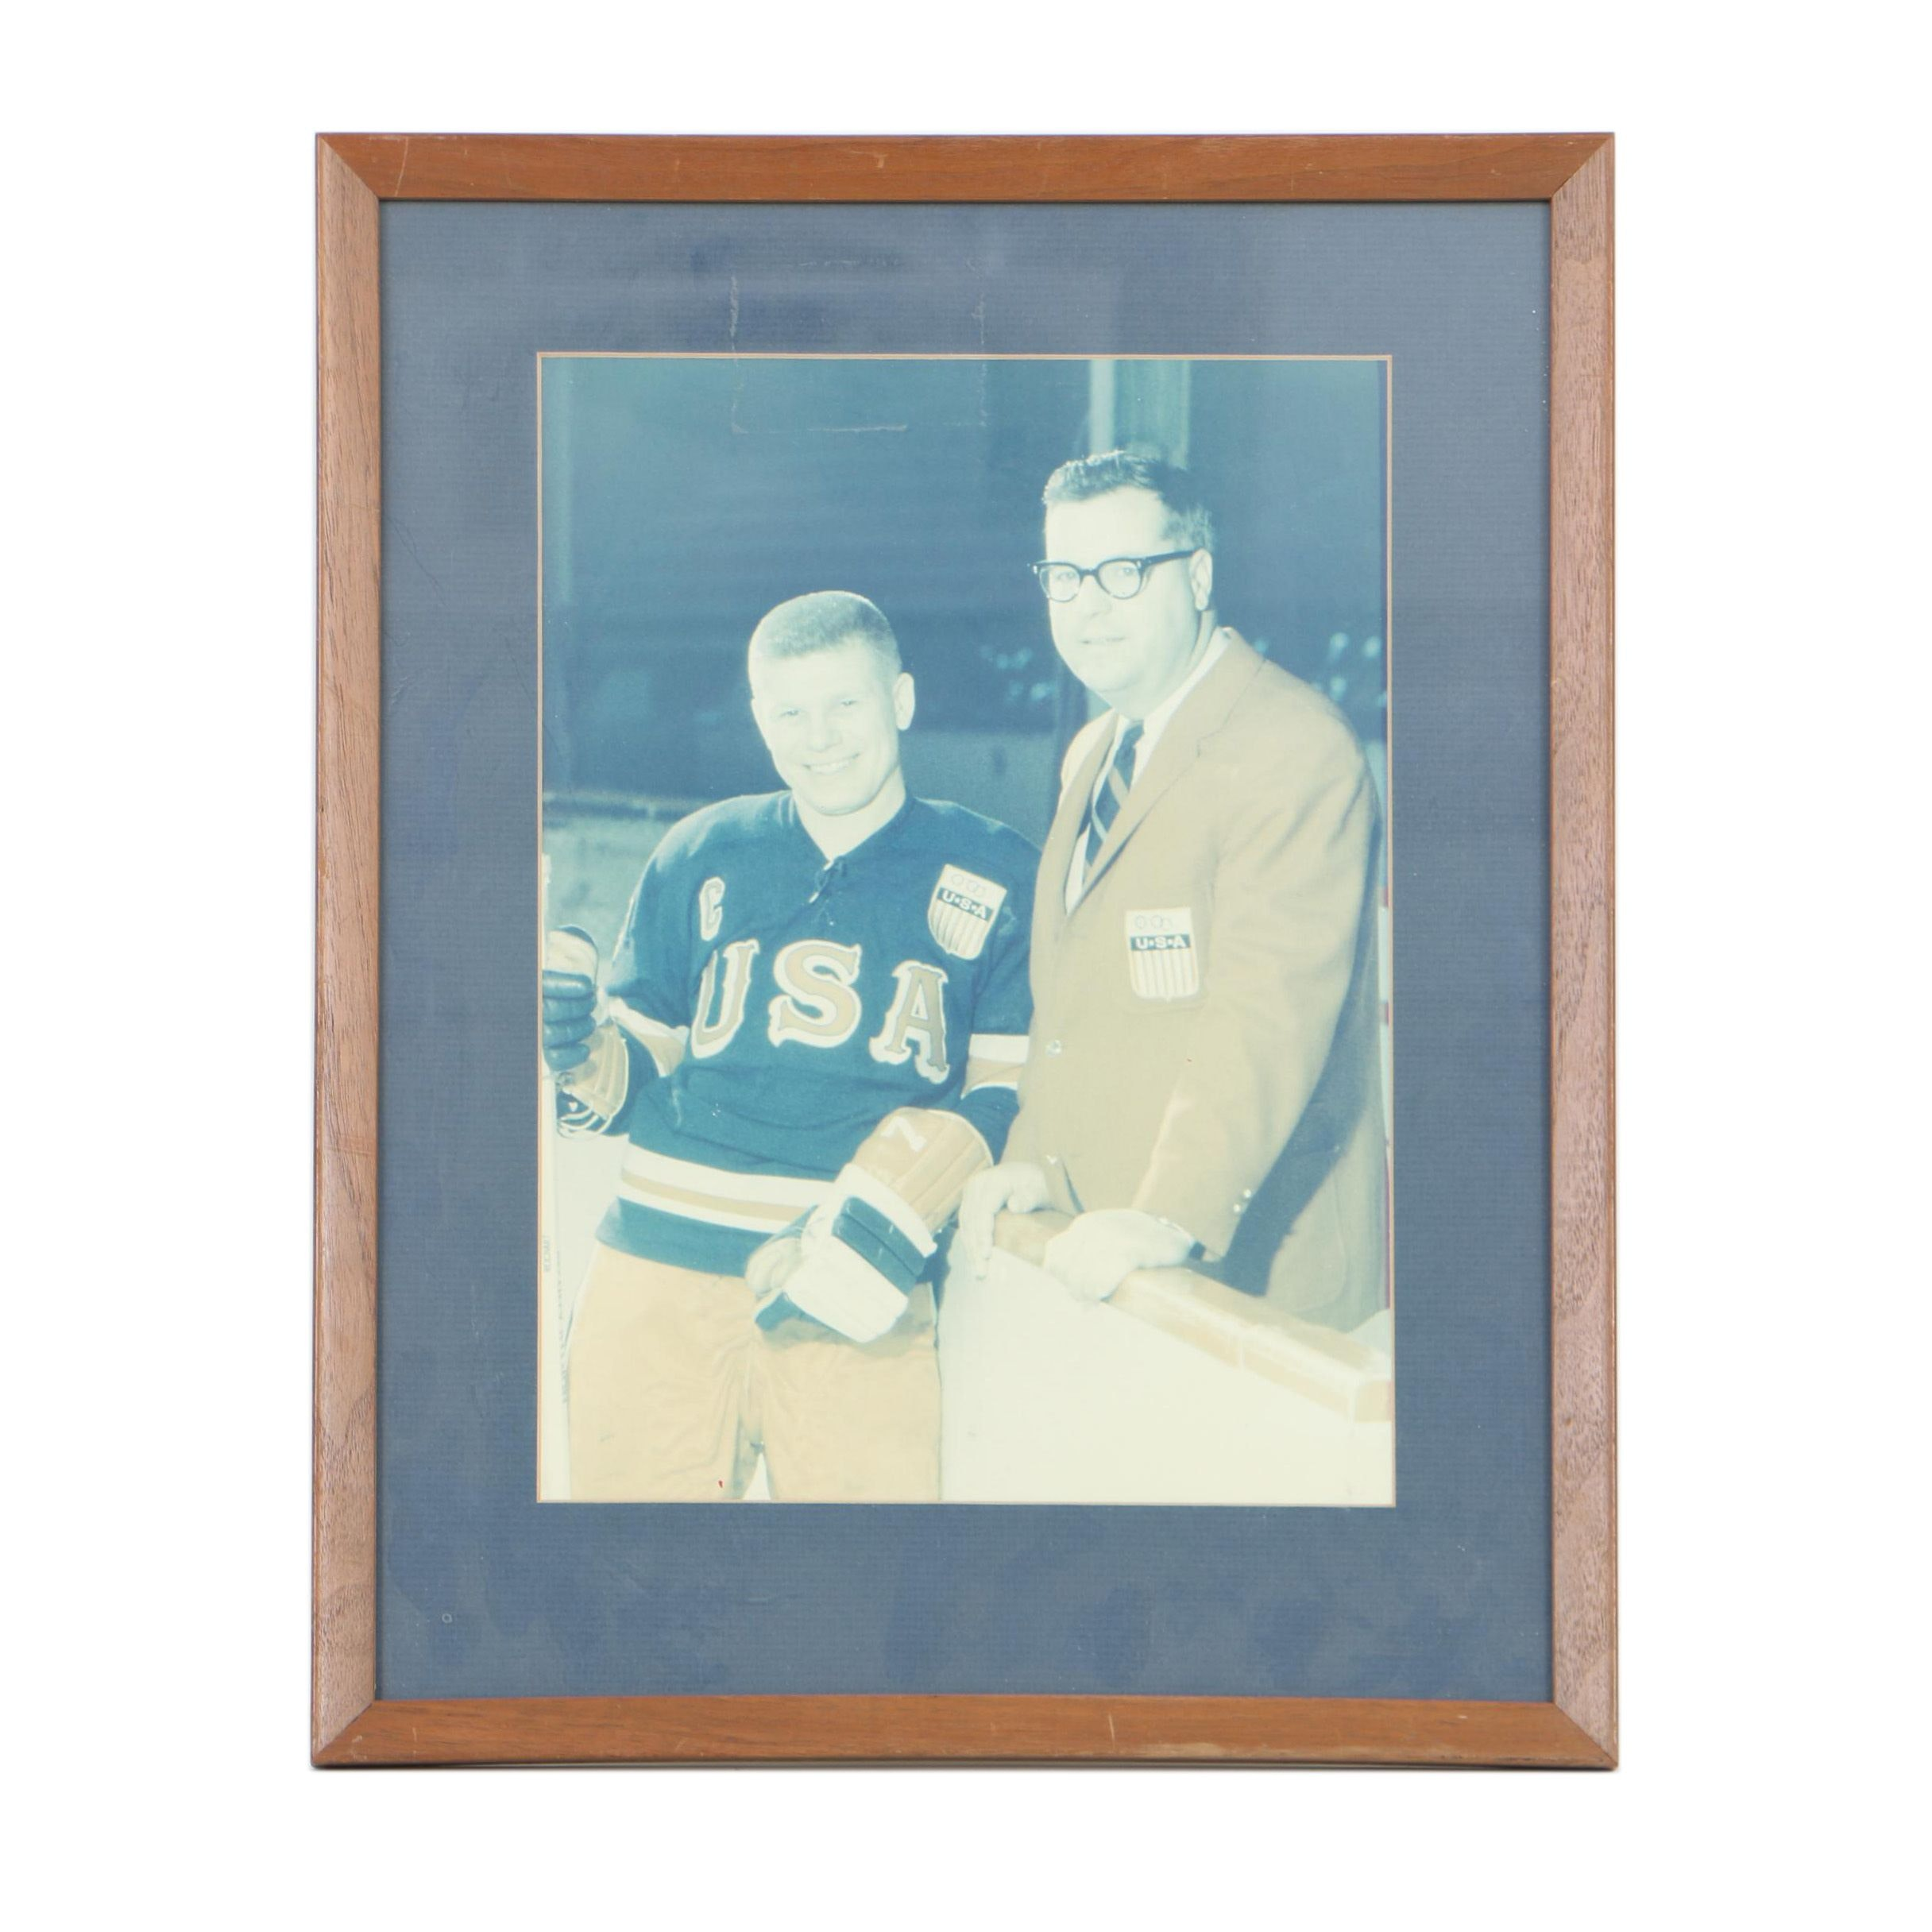 Vintage Photograph of Walter Bush, Jr. and USA Hockey Player Bill Reichart